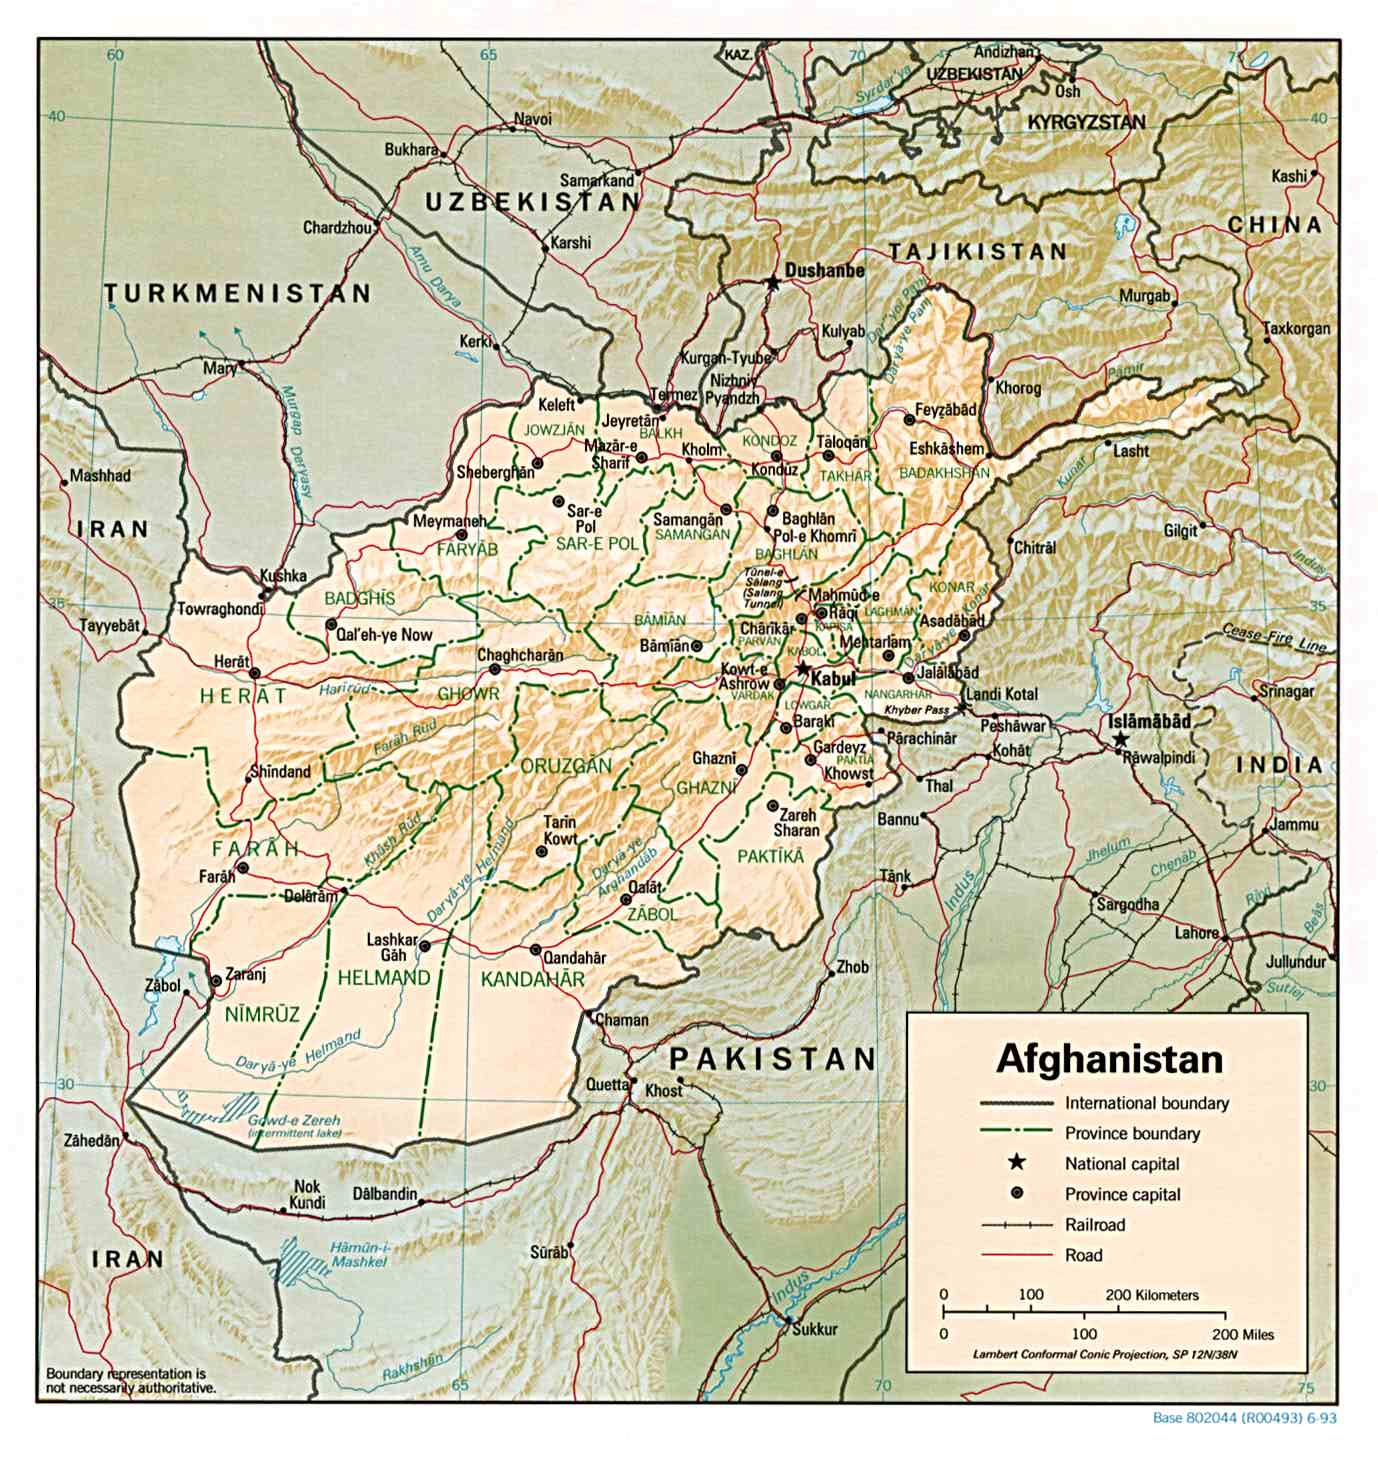 Maps Of Afghanistan Map Library Maps Of The World - Afghanistan political map